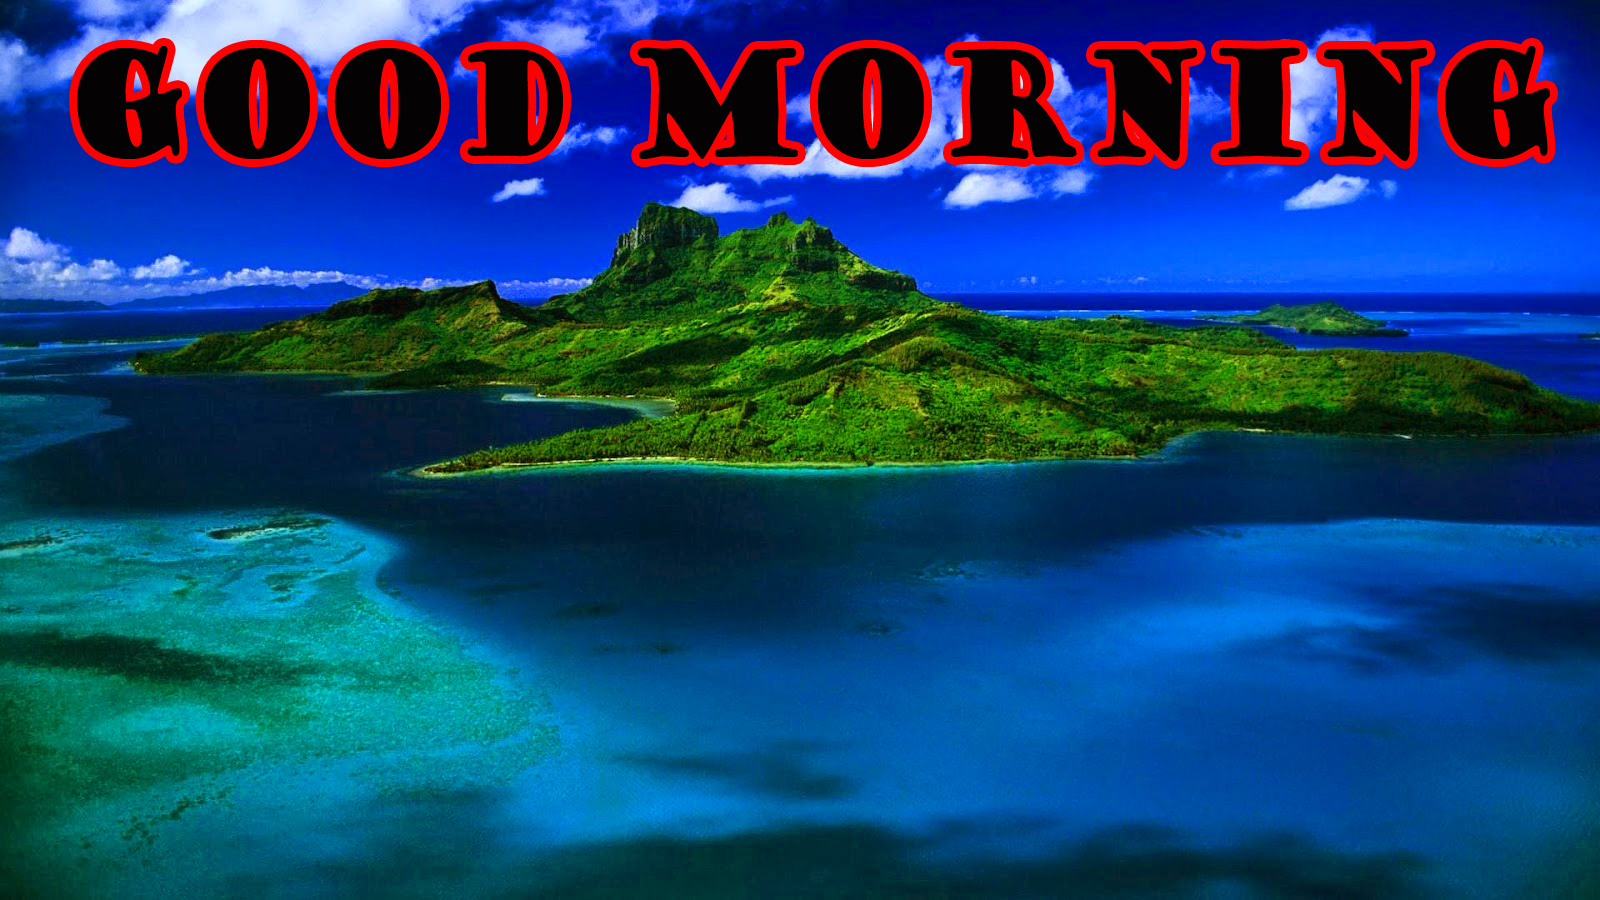 गुड मॉर्निंग New Wonderful Good Morning Images Photo Wallpaper Download For Facebook